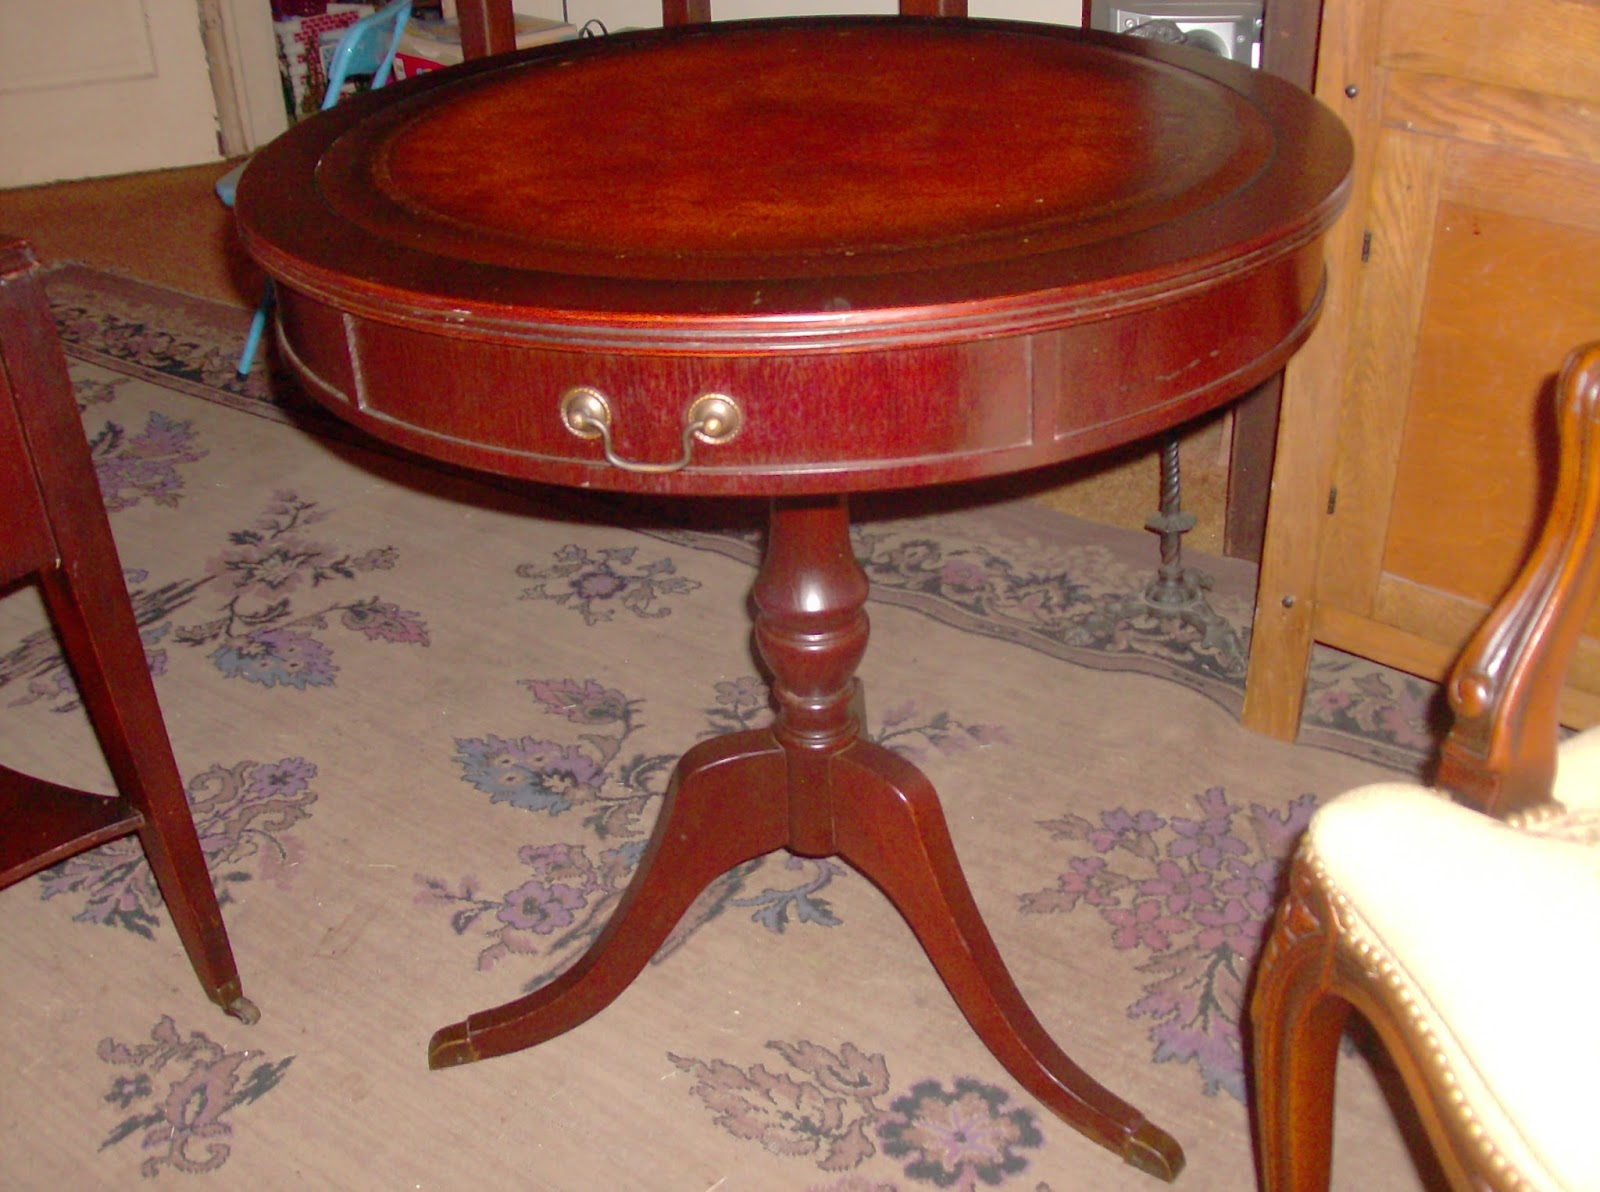 Queen anne chair history - Gina S Junk Blog In Columbus Georgia Wood With History Mahogany Antique Mahogany Side Tables Drum Table Coffee Table Queen Anne Chair Gina S Junk